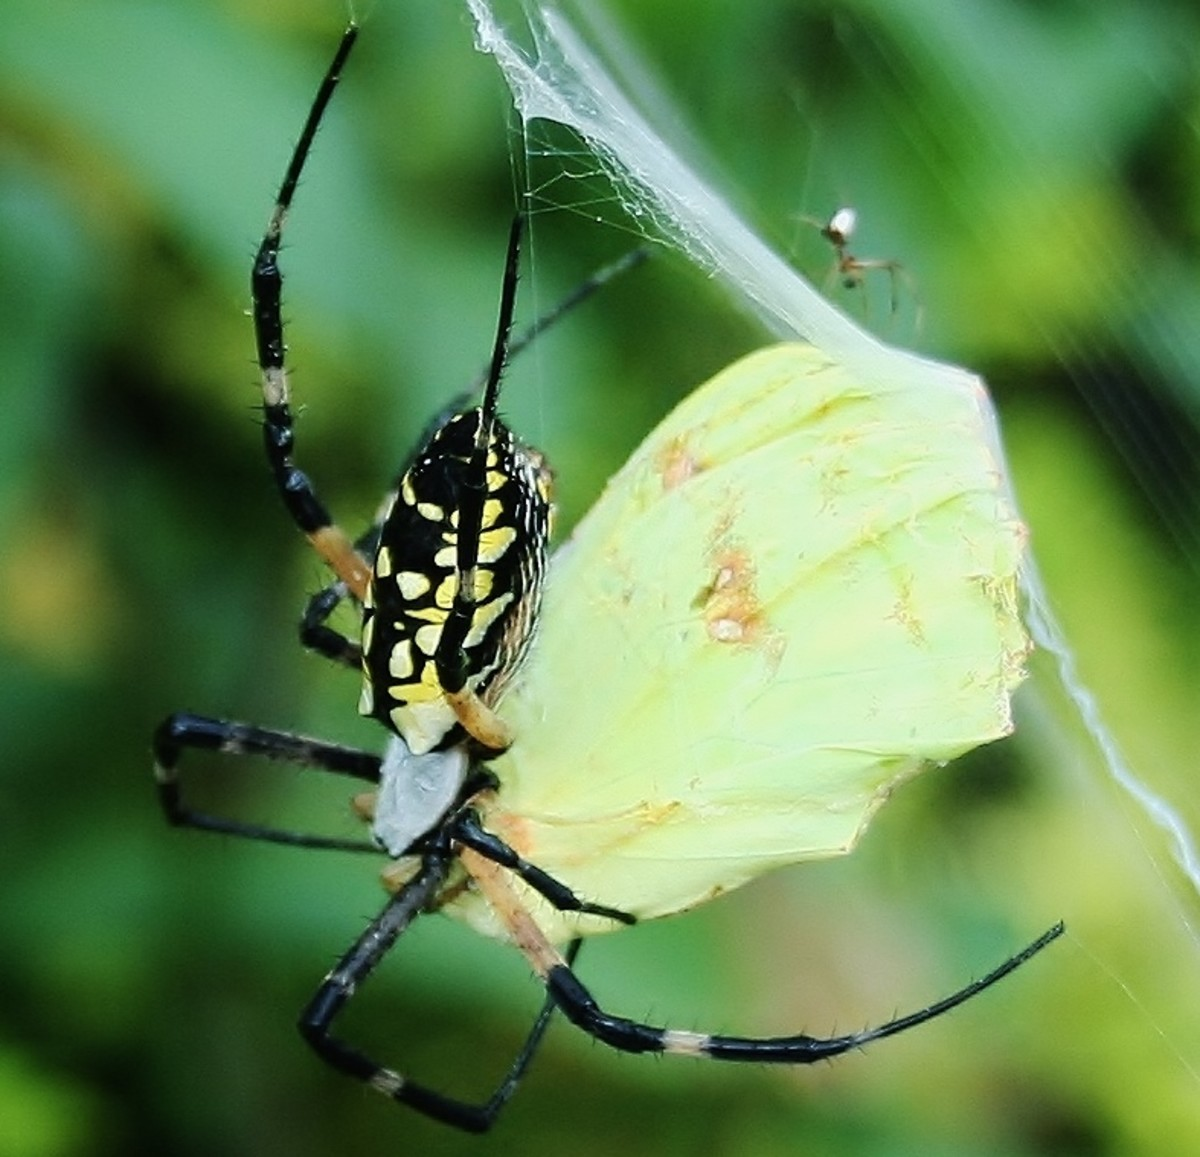 The Yellow Garden Spider